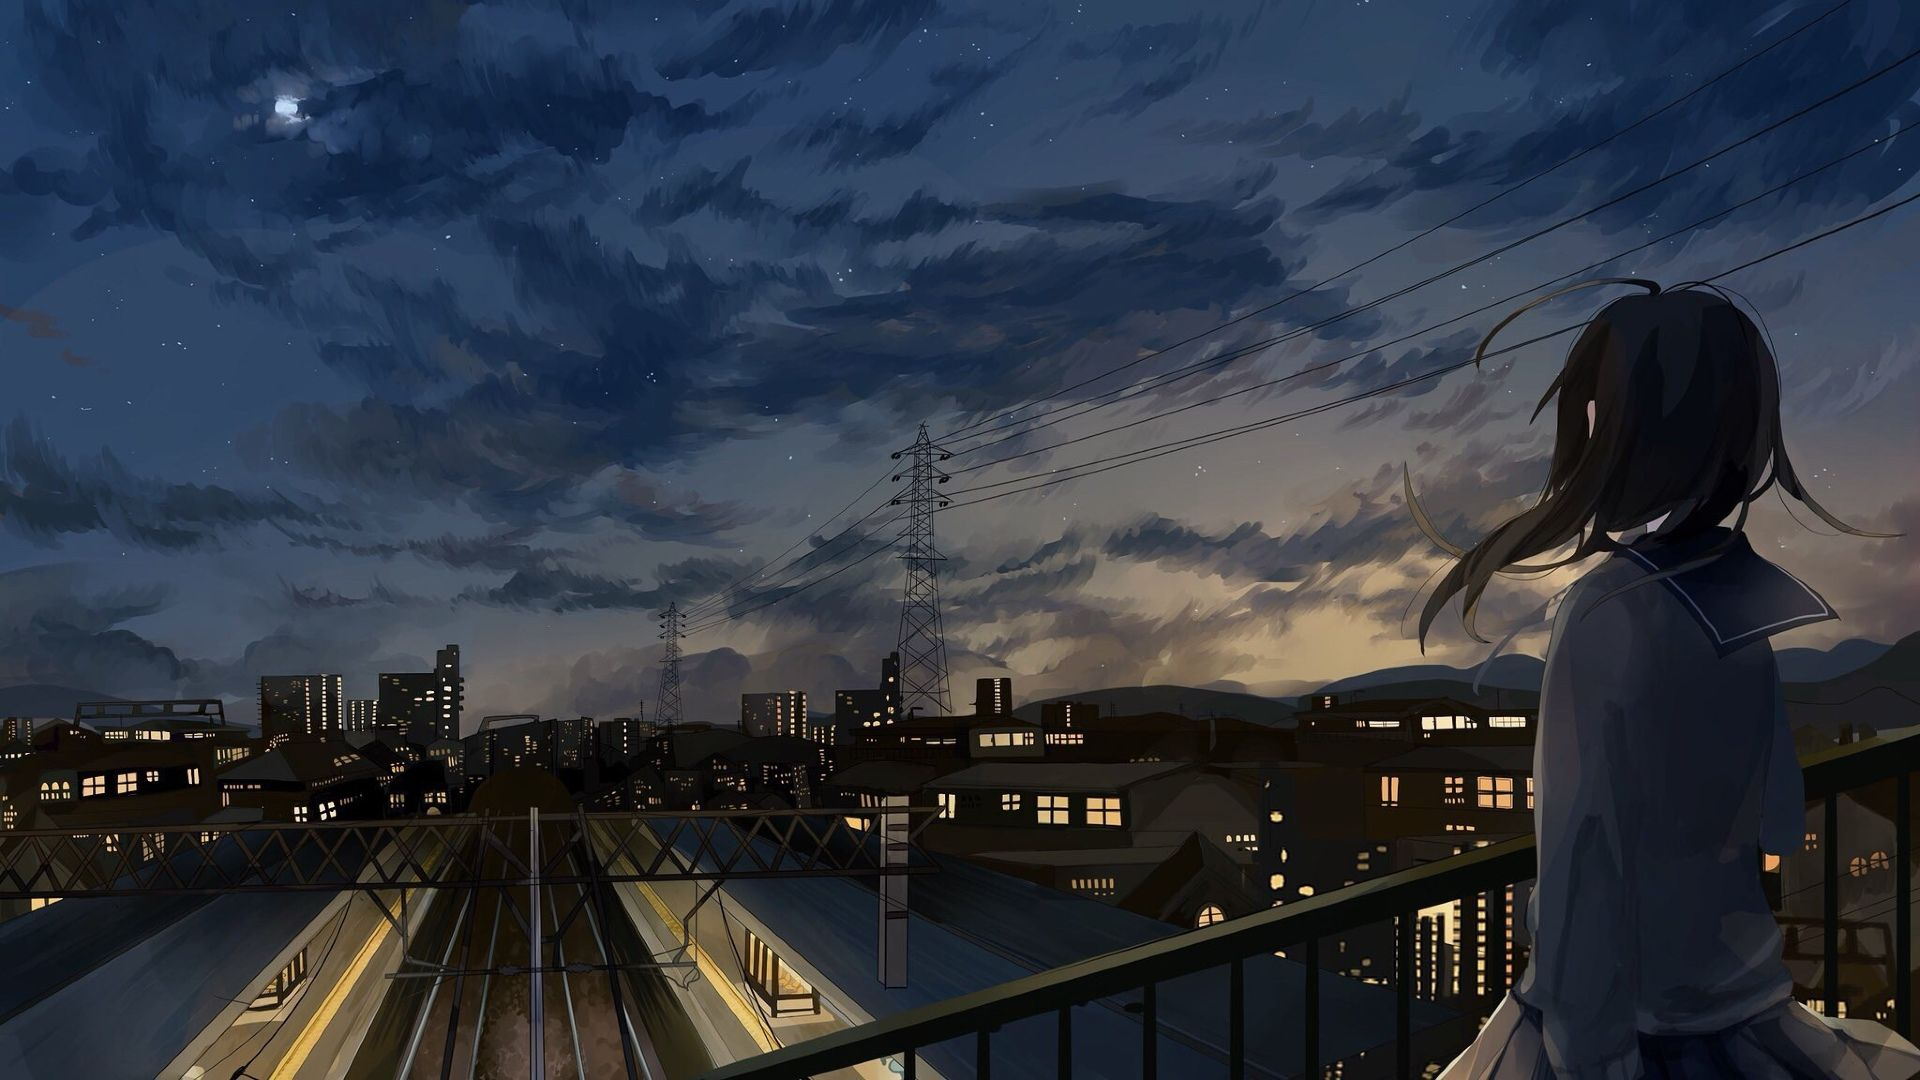 Morning City Anime 1920x1080 Wallpapers - Wallpaper Cave